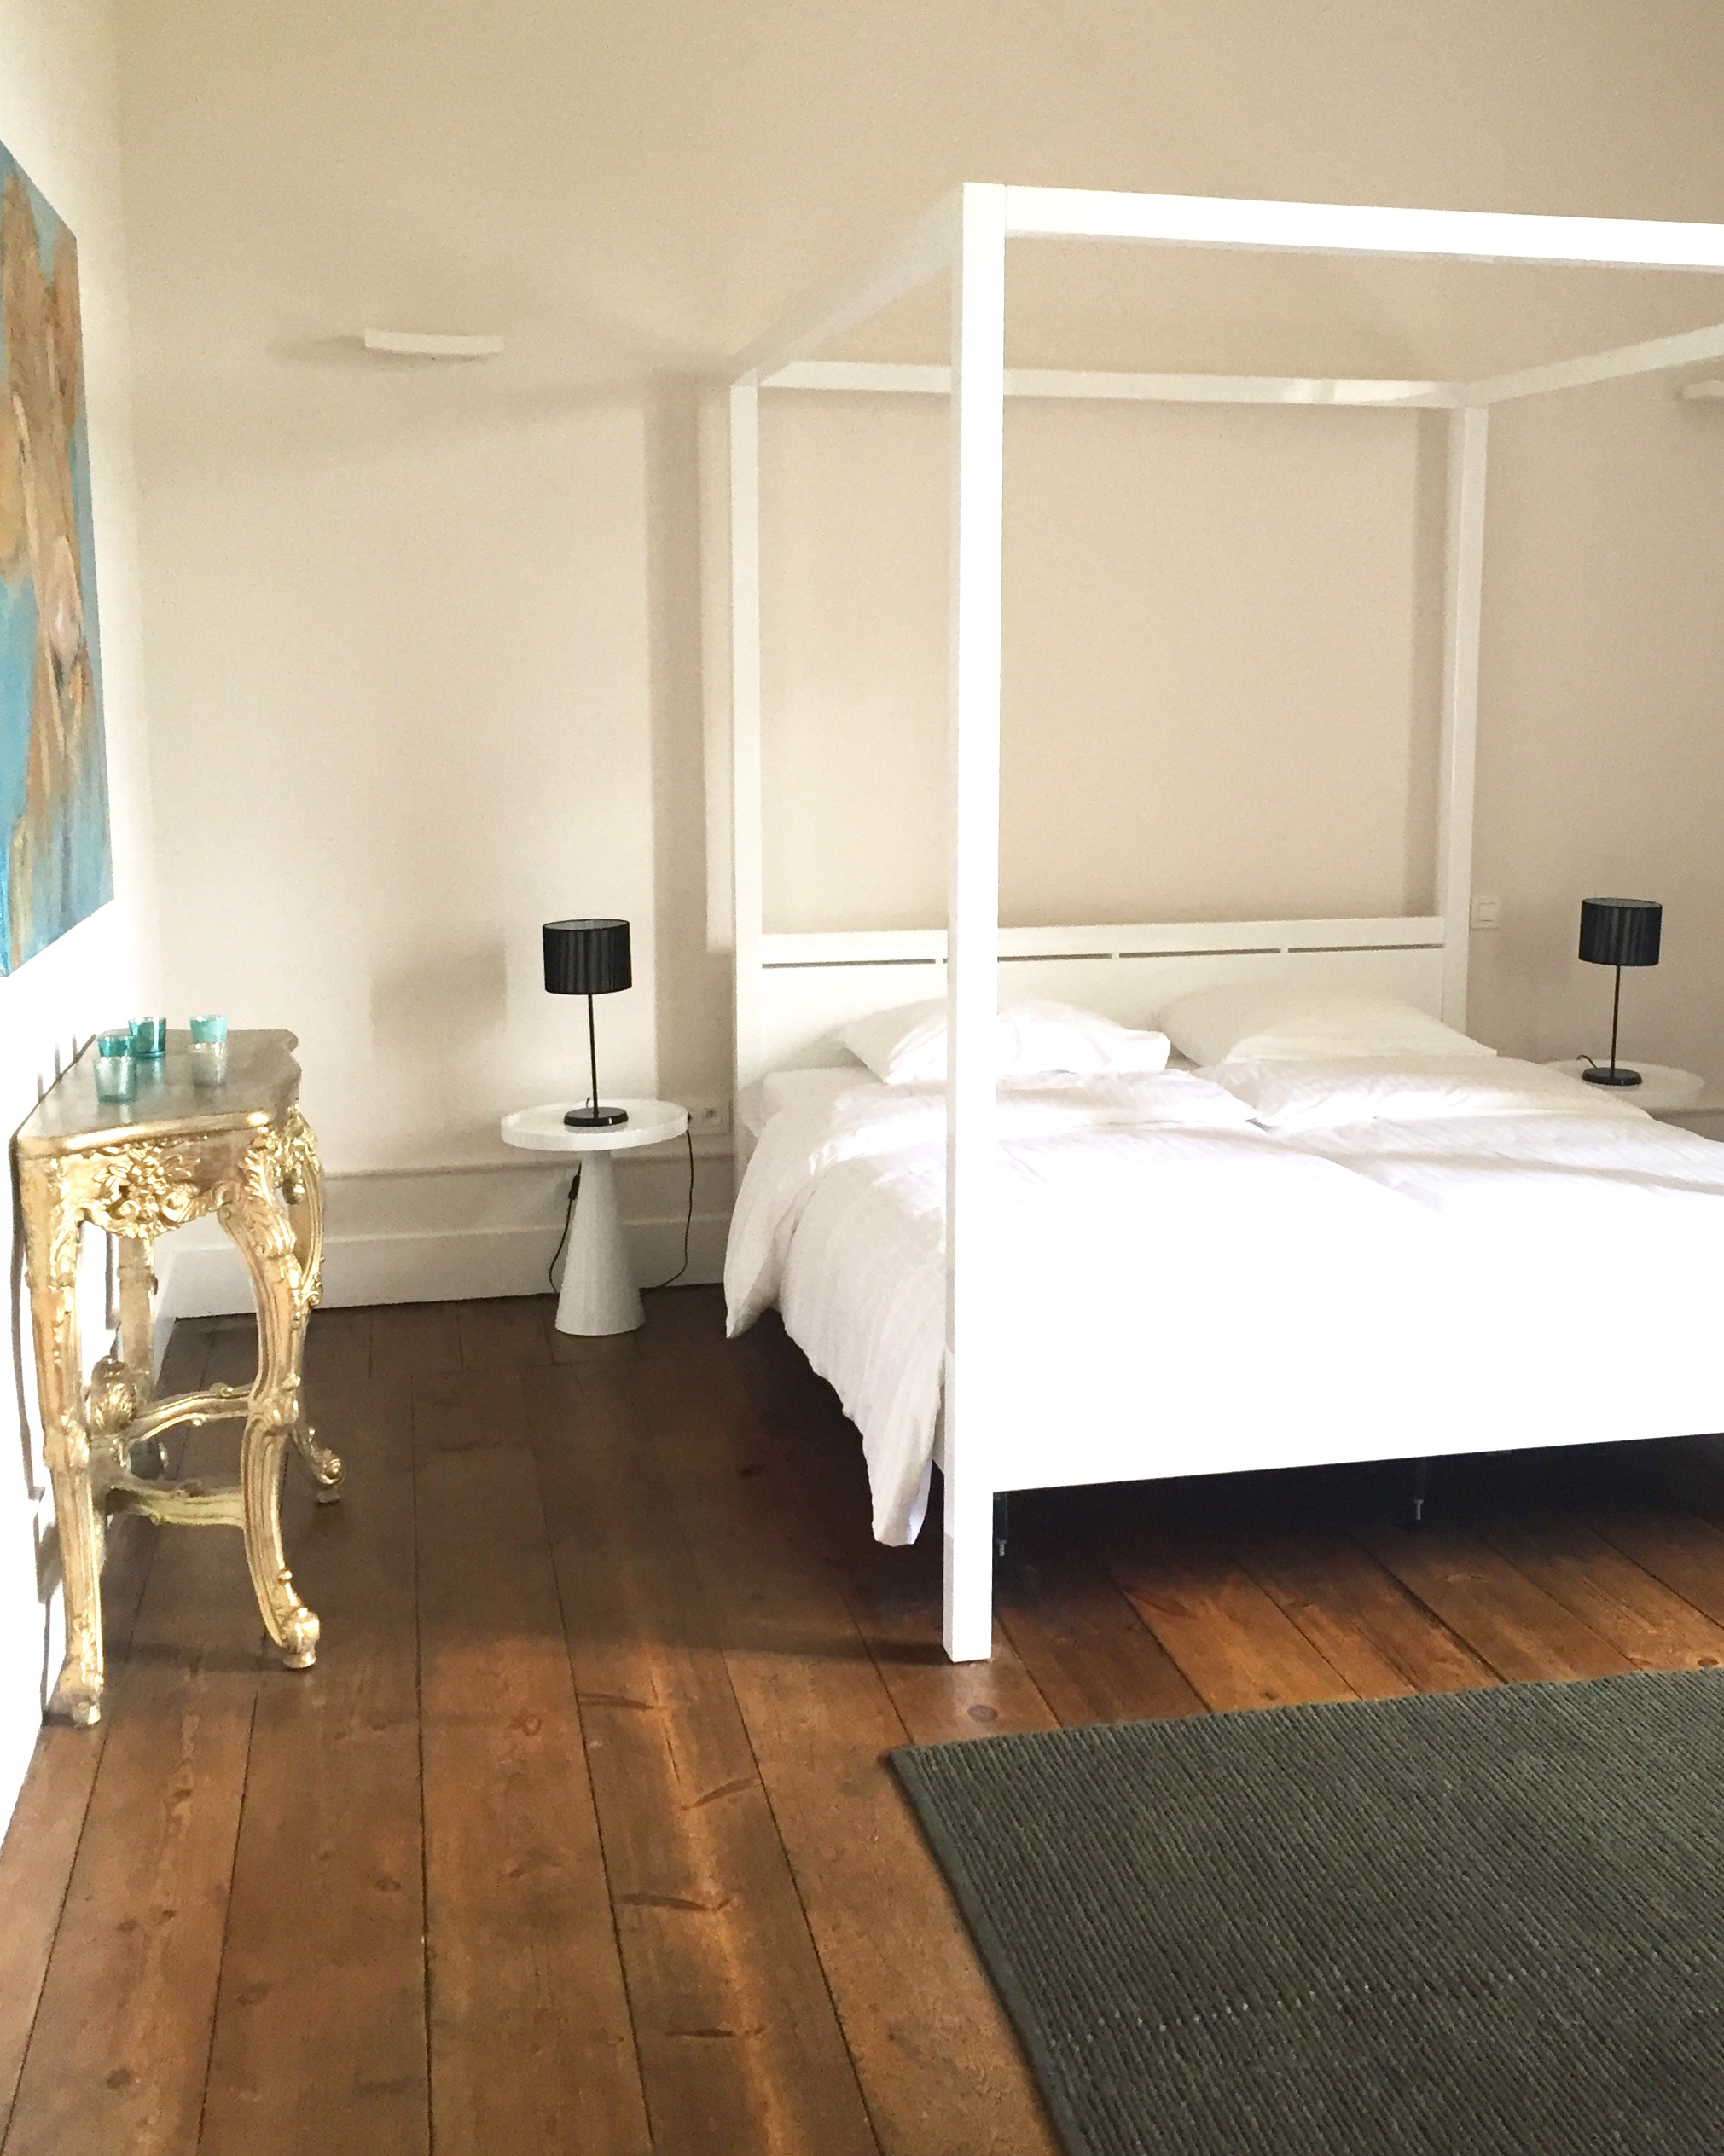 Still dreaming of the rooms at  Chateau De Redon